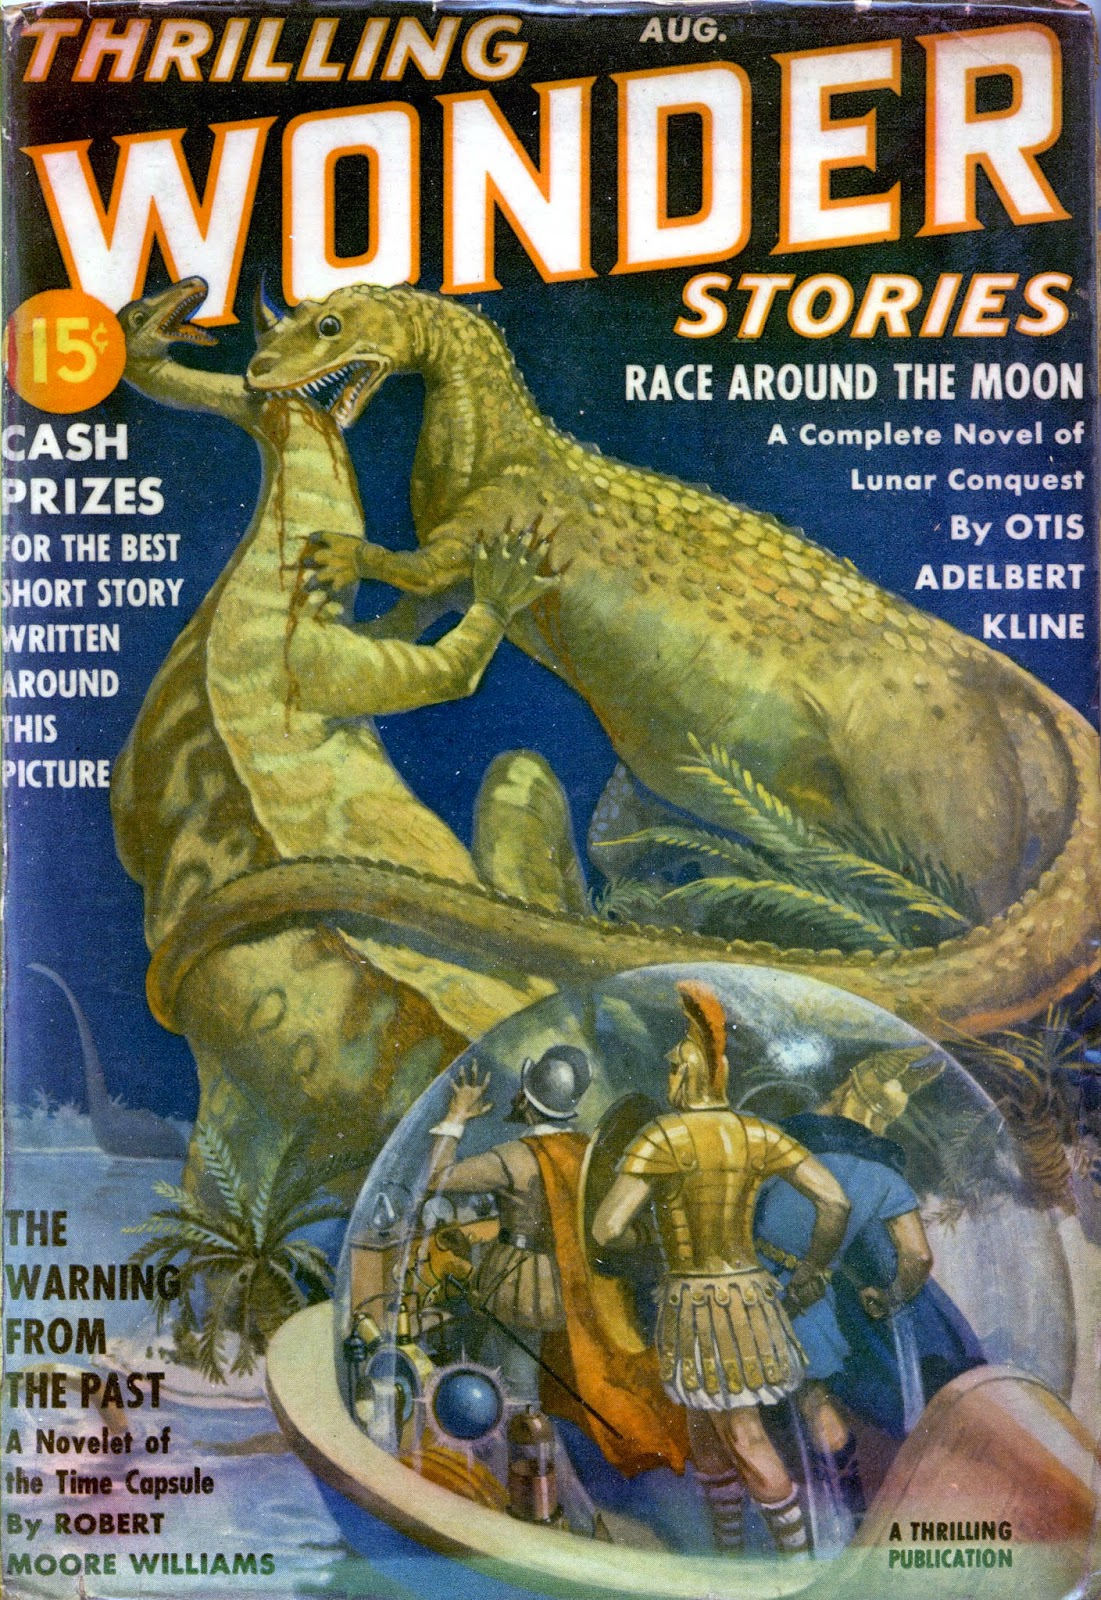 http://pulpcovers.com/the-warning-from-the-past/